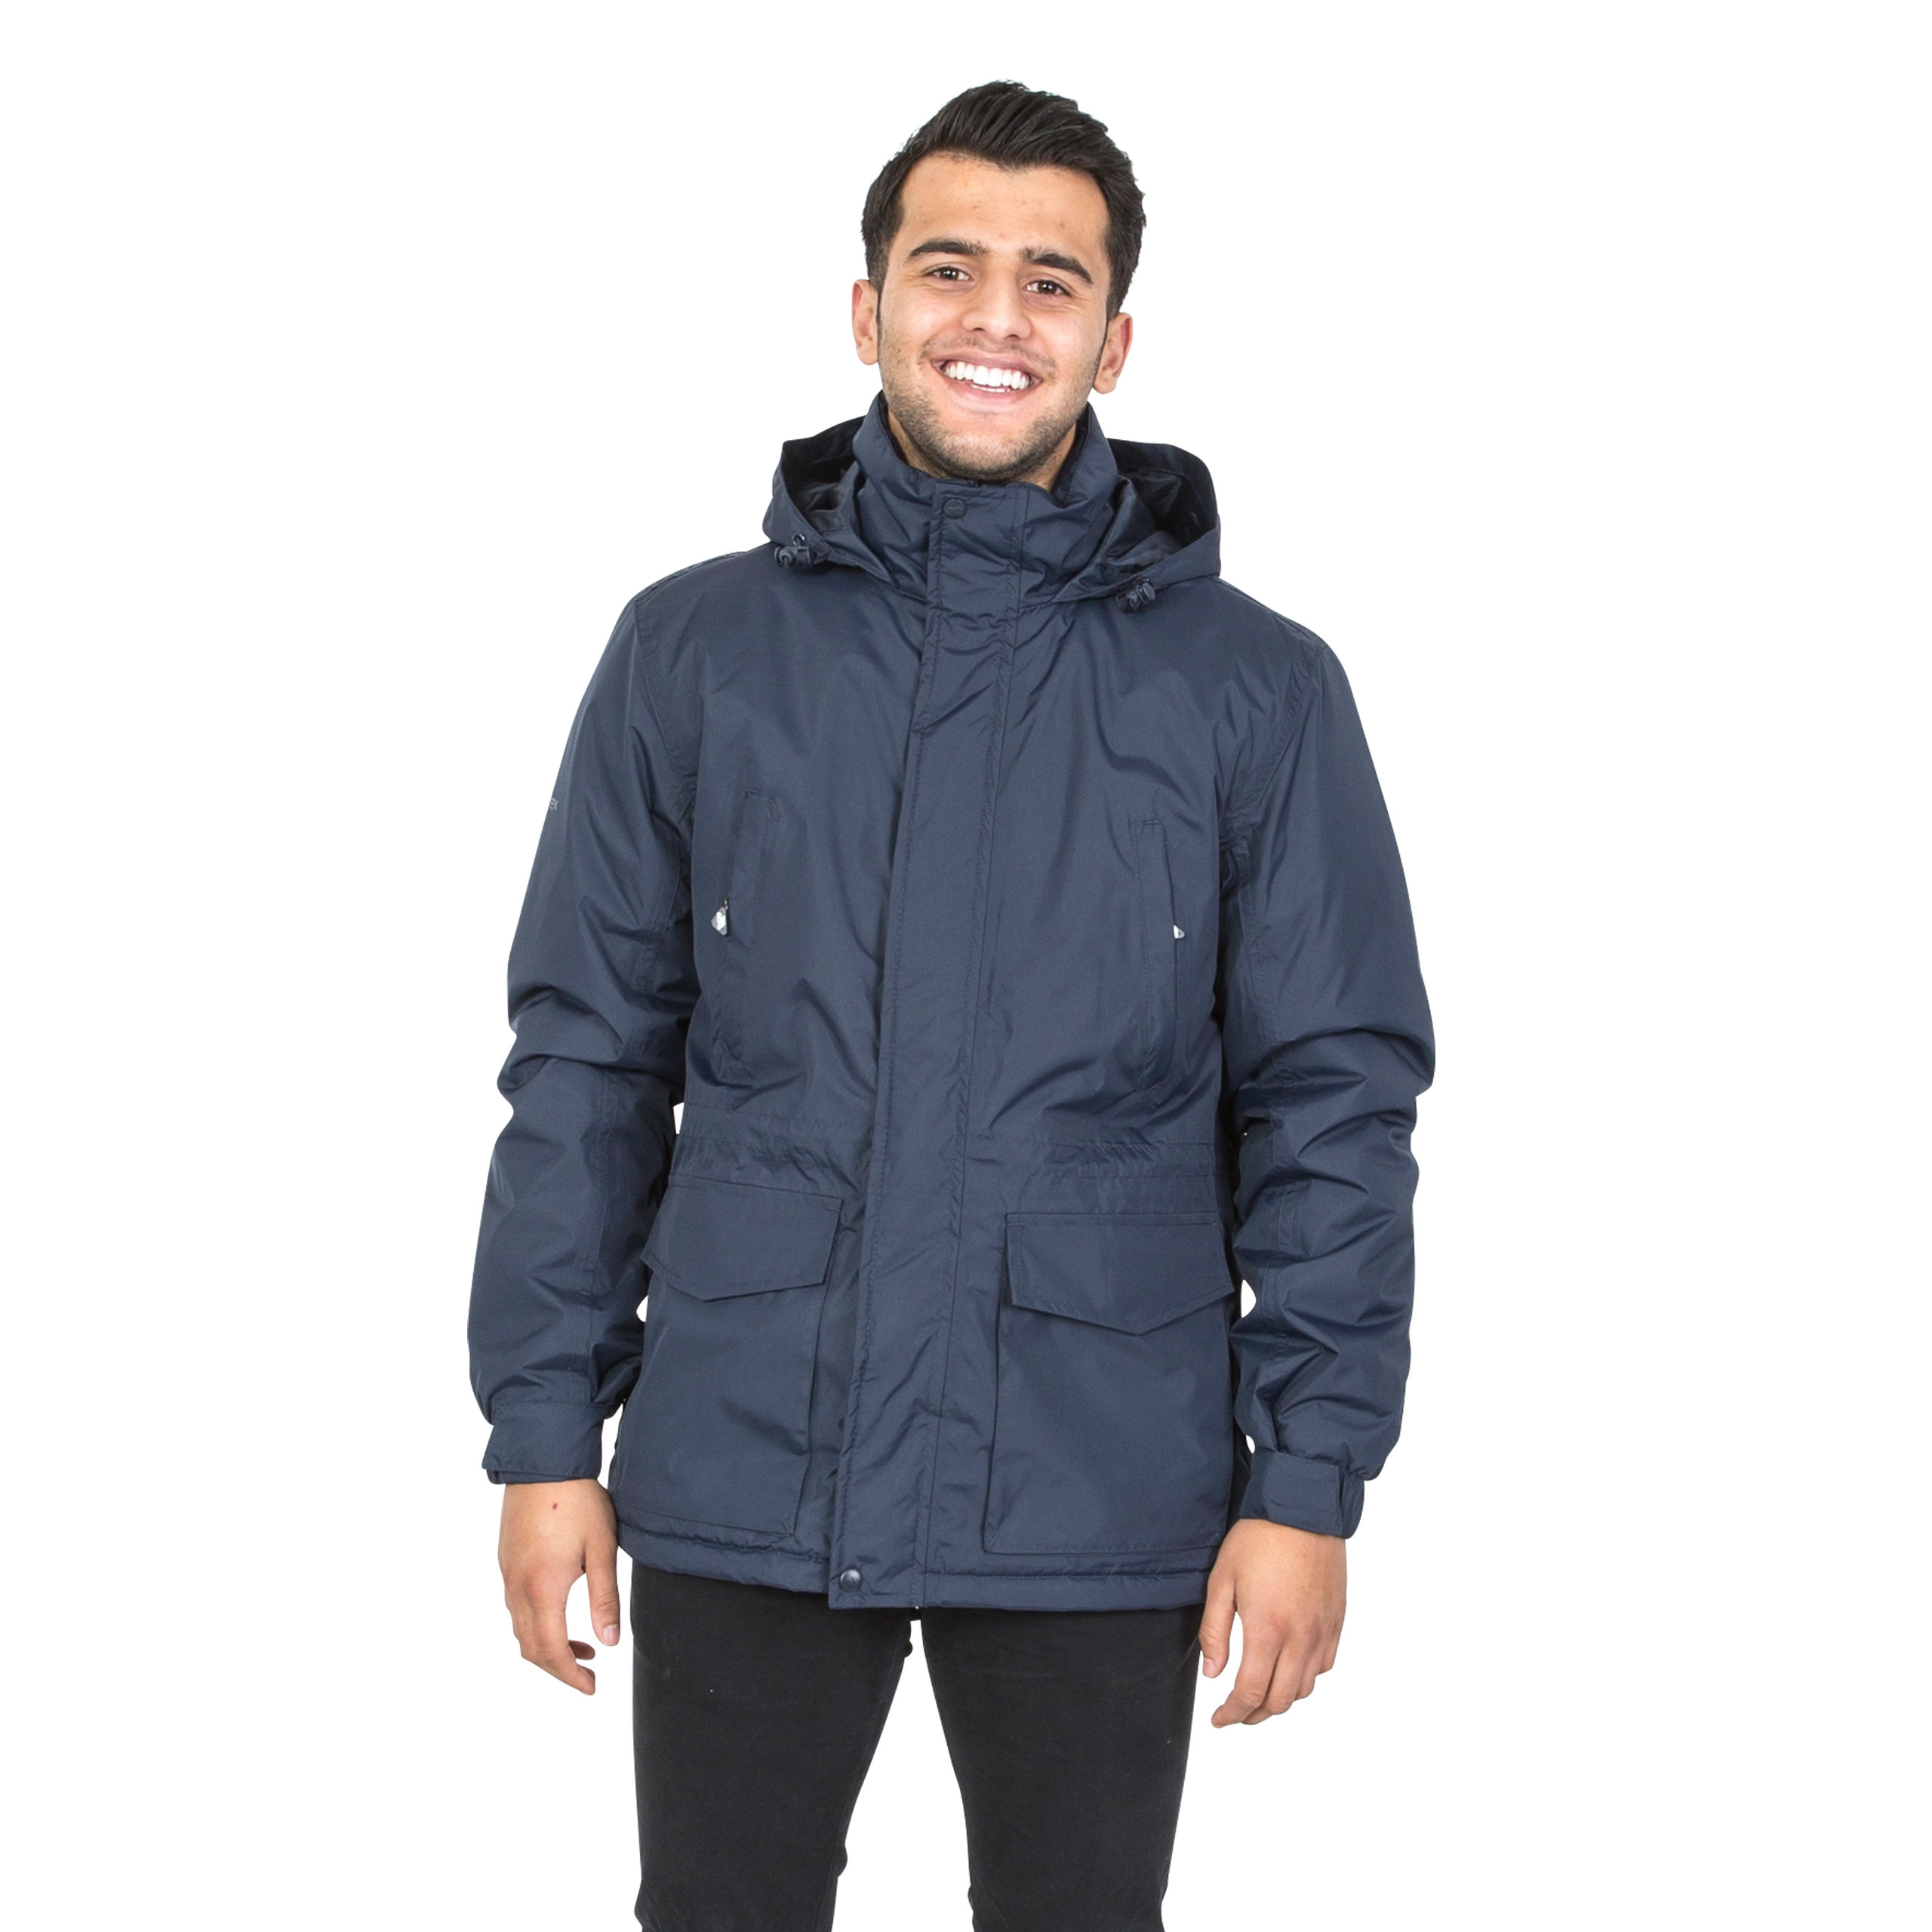 Trespass-Mens-Winter-Jacket-Padded-Waterproof-Insulated-Coat-in-Navy-Black thumbnail 14